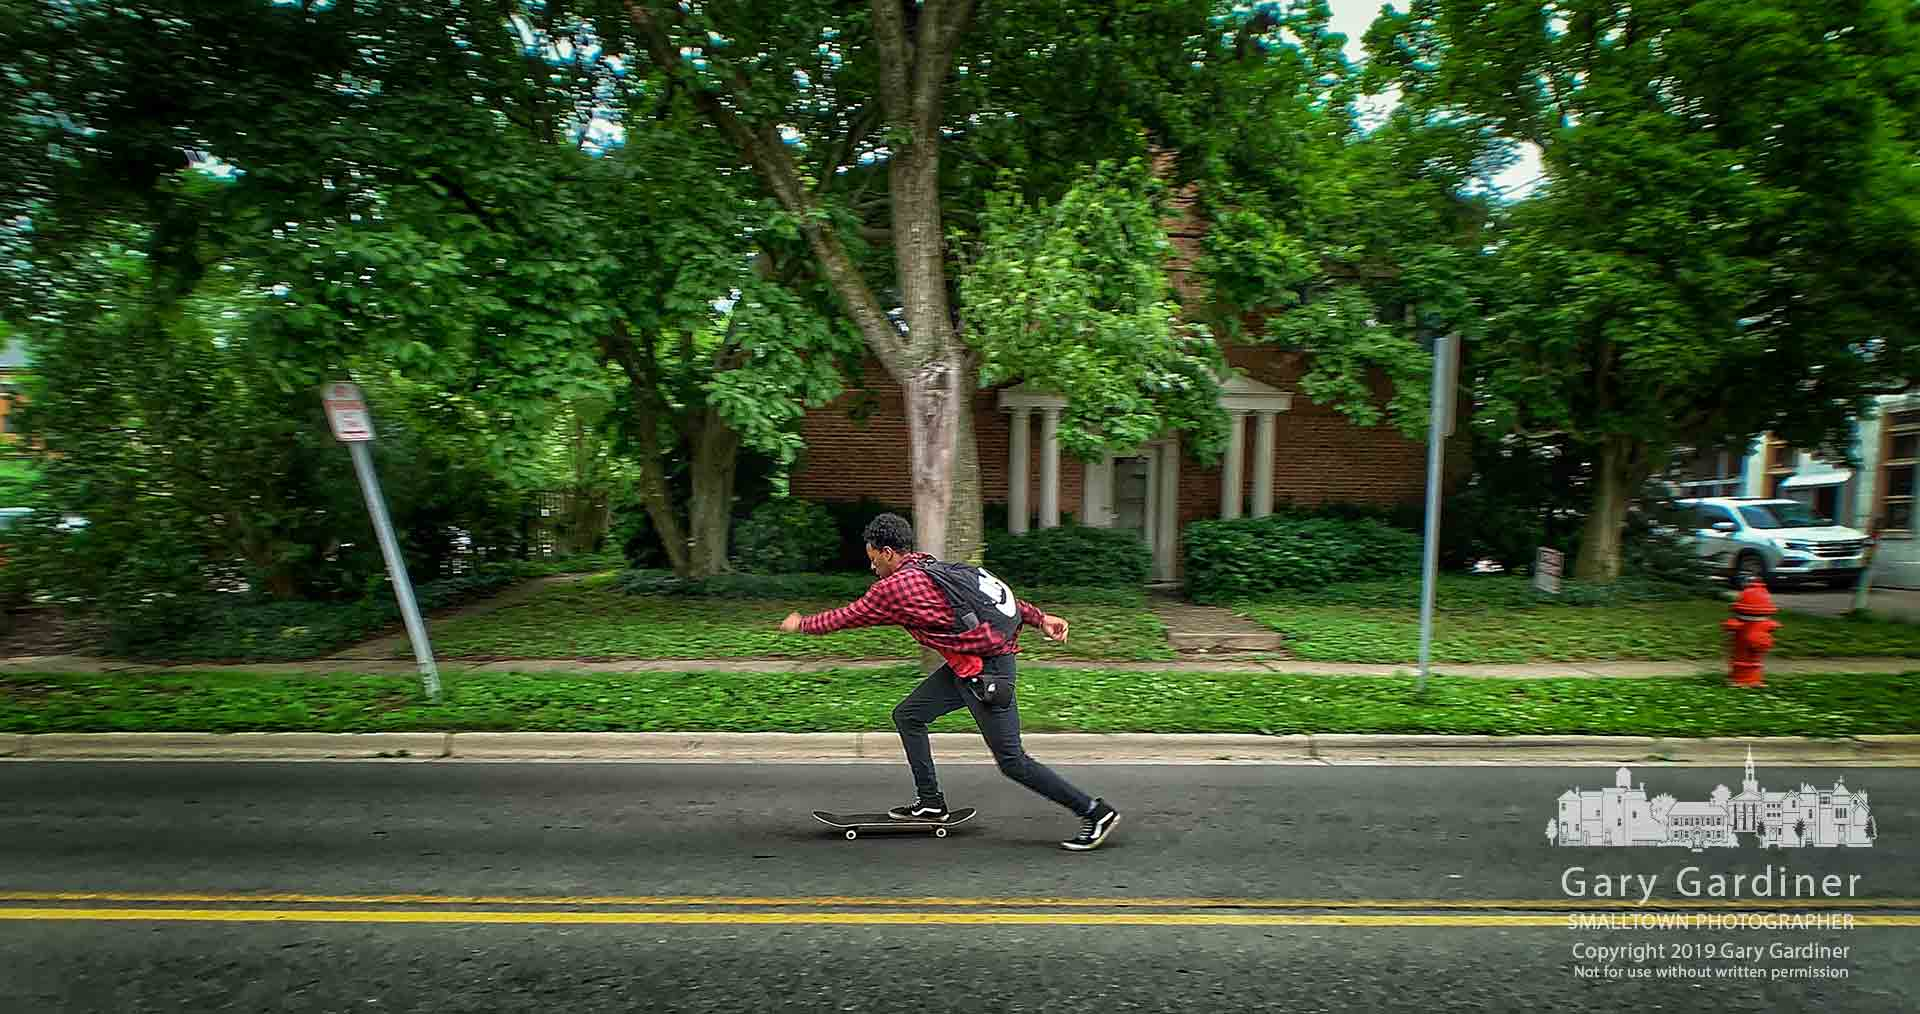 A skateboarder thrusts himself down West Main Street against a strong afternoon wind. My Final Photo for June 14, 2019.